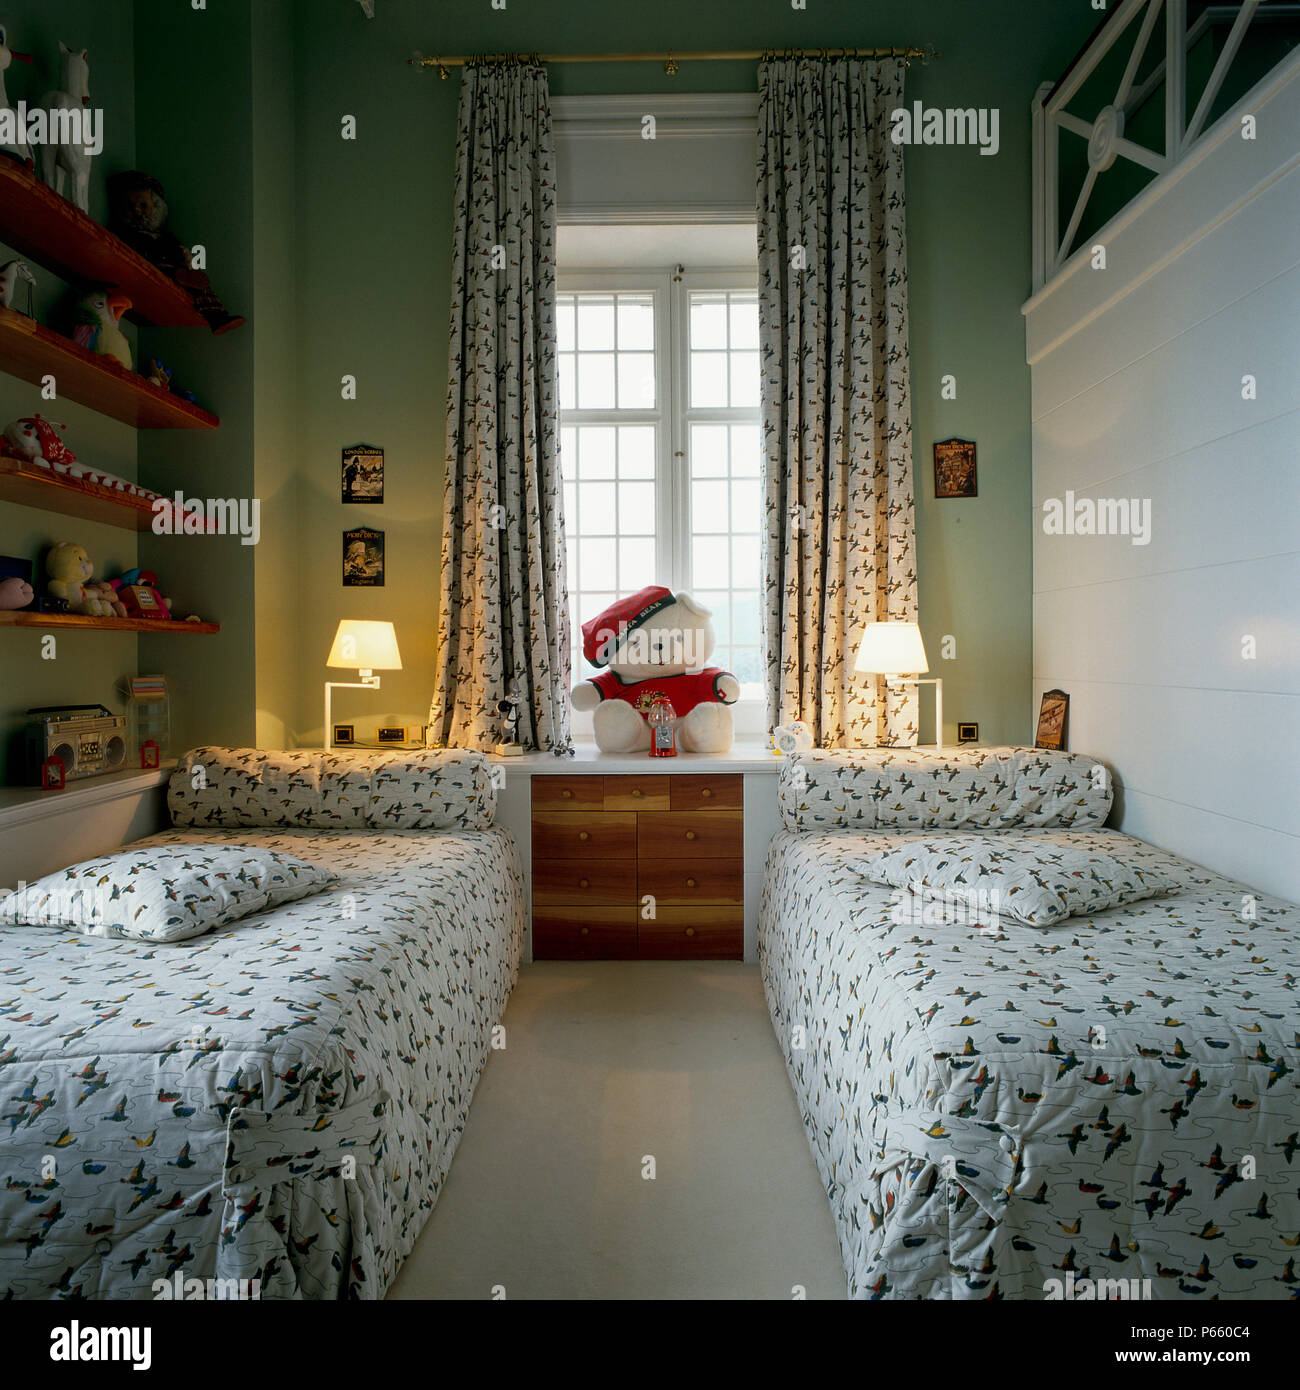 Picture of: View Of Two Single Beds In A Children S Room Stock Photo Alamy